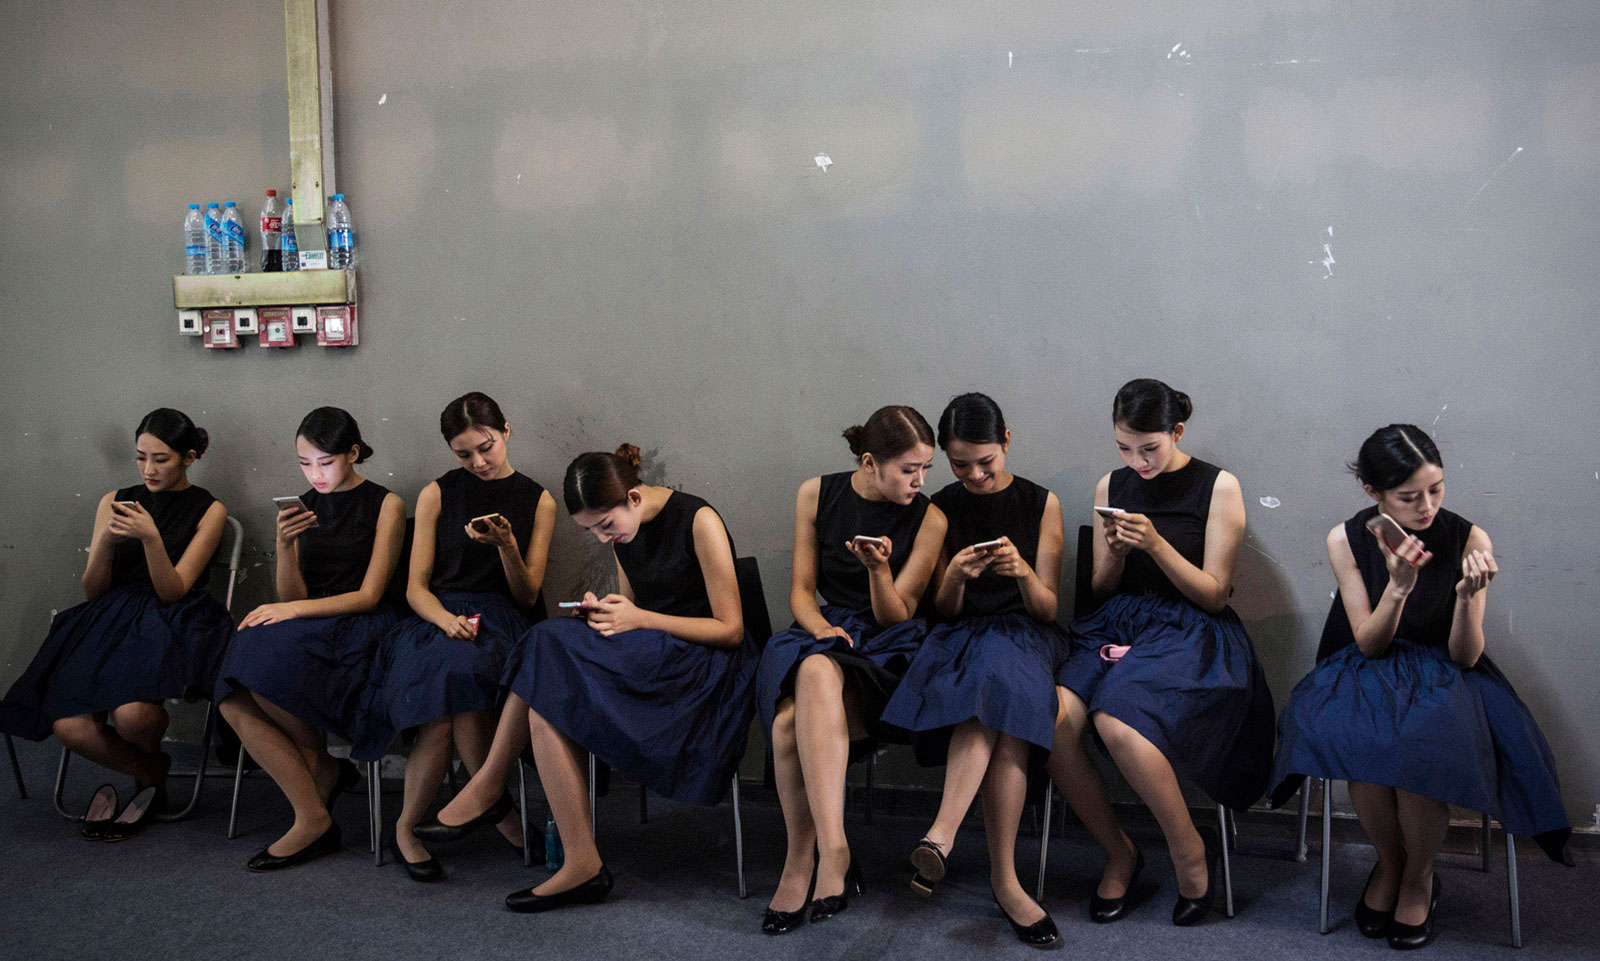 Exhibit hostesses using smartphones during the China (Guangzhou) International Automobile Exhibition